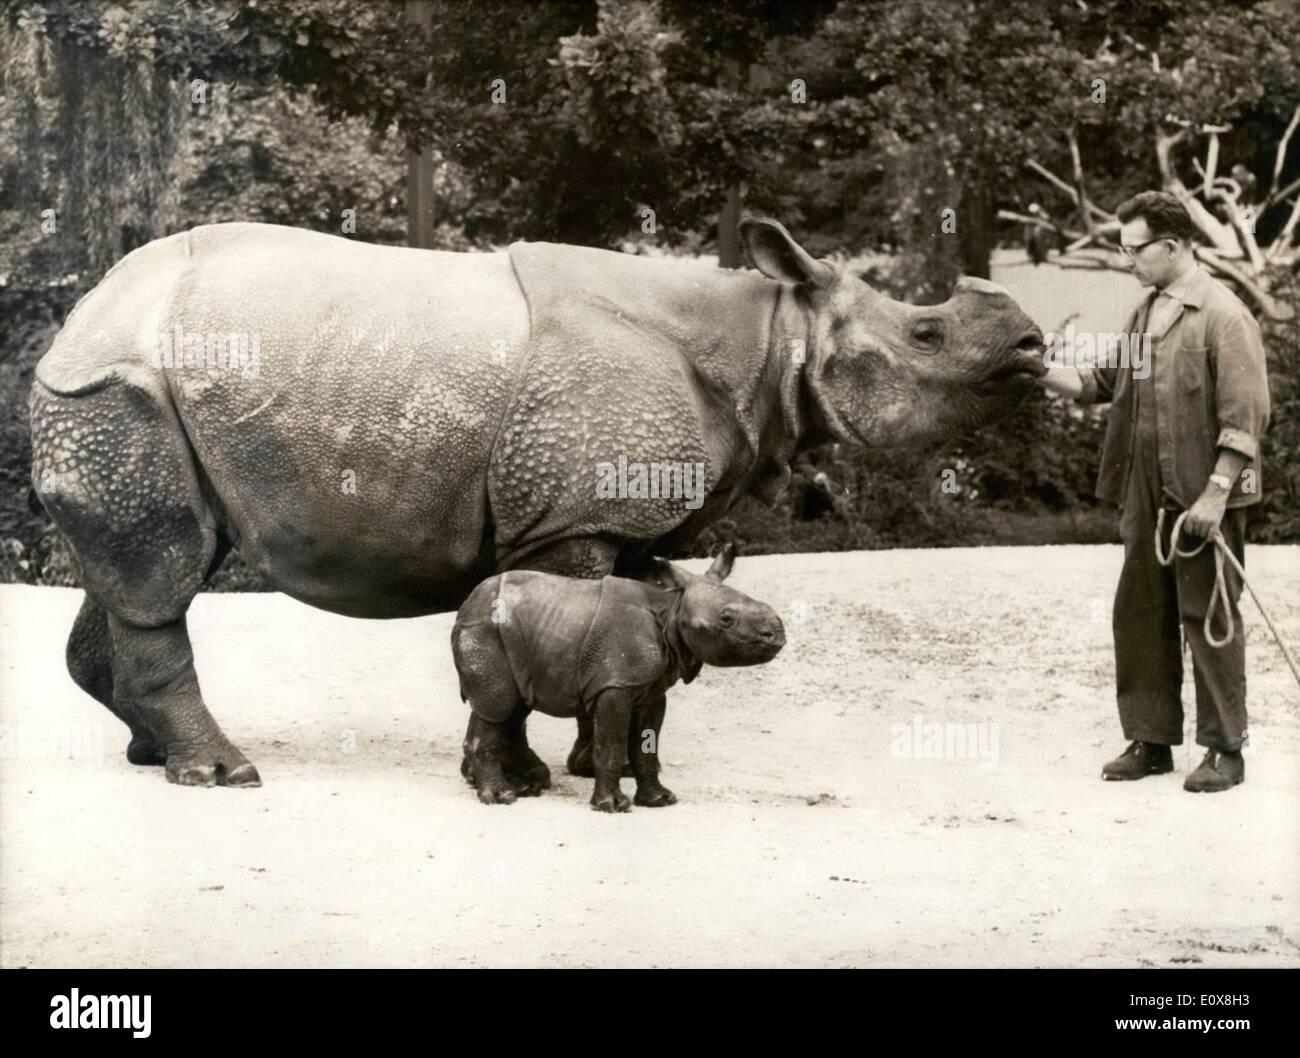 Aug. 08, 1965 - Rhino Baby at Basel Zoo: For the sixth time at the Basel Zoo a rhino was born. Mother Moola shown here leading her baby weighing 69 kilos at birth. It is believed that only some 400 species are new living complete freedom in Africa. - Stock Image